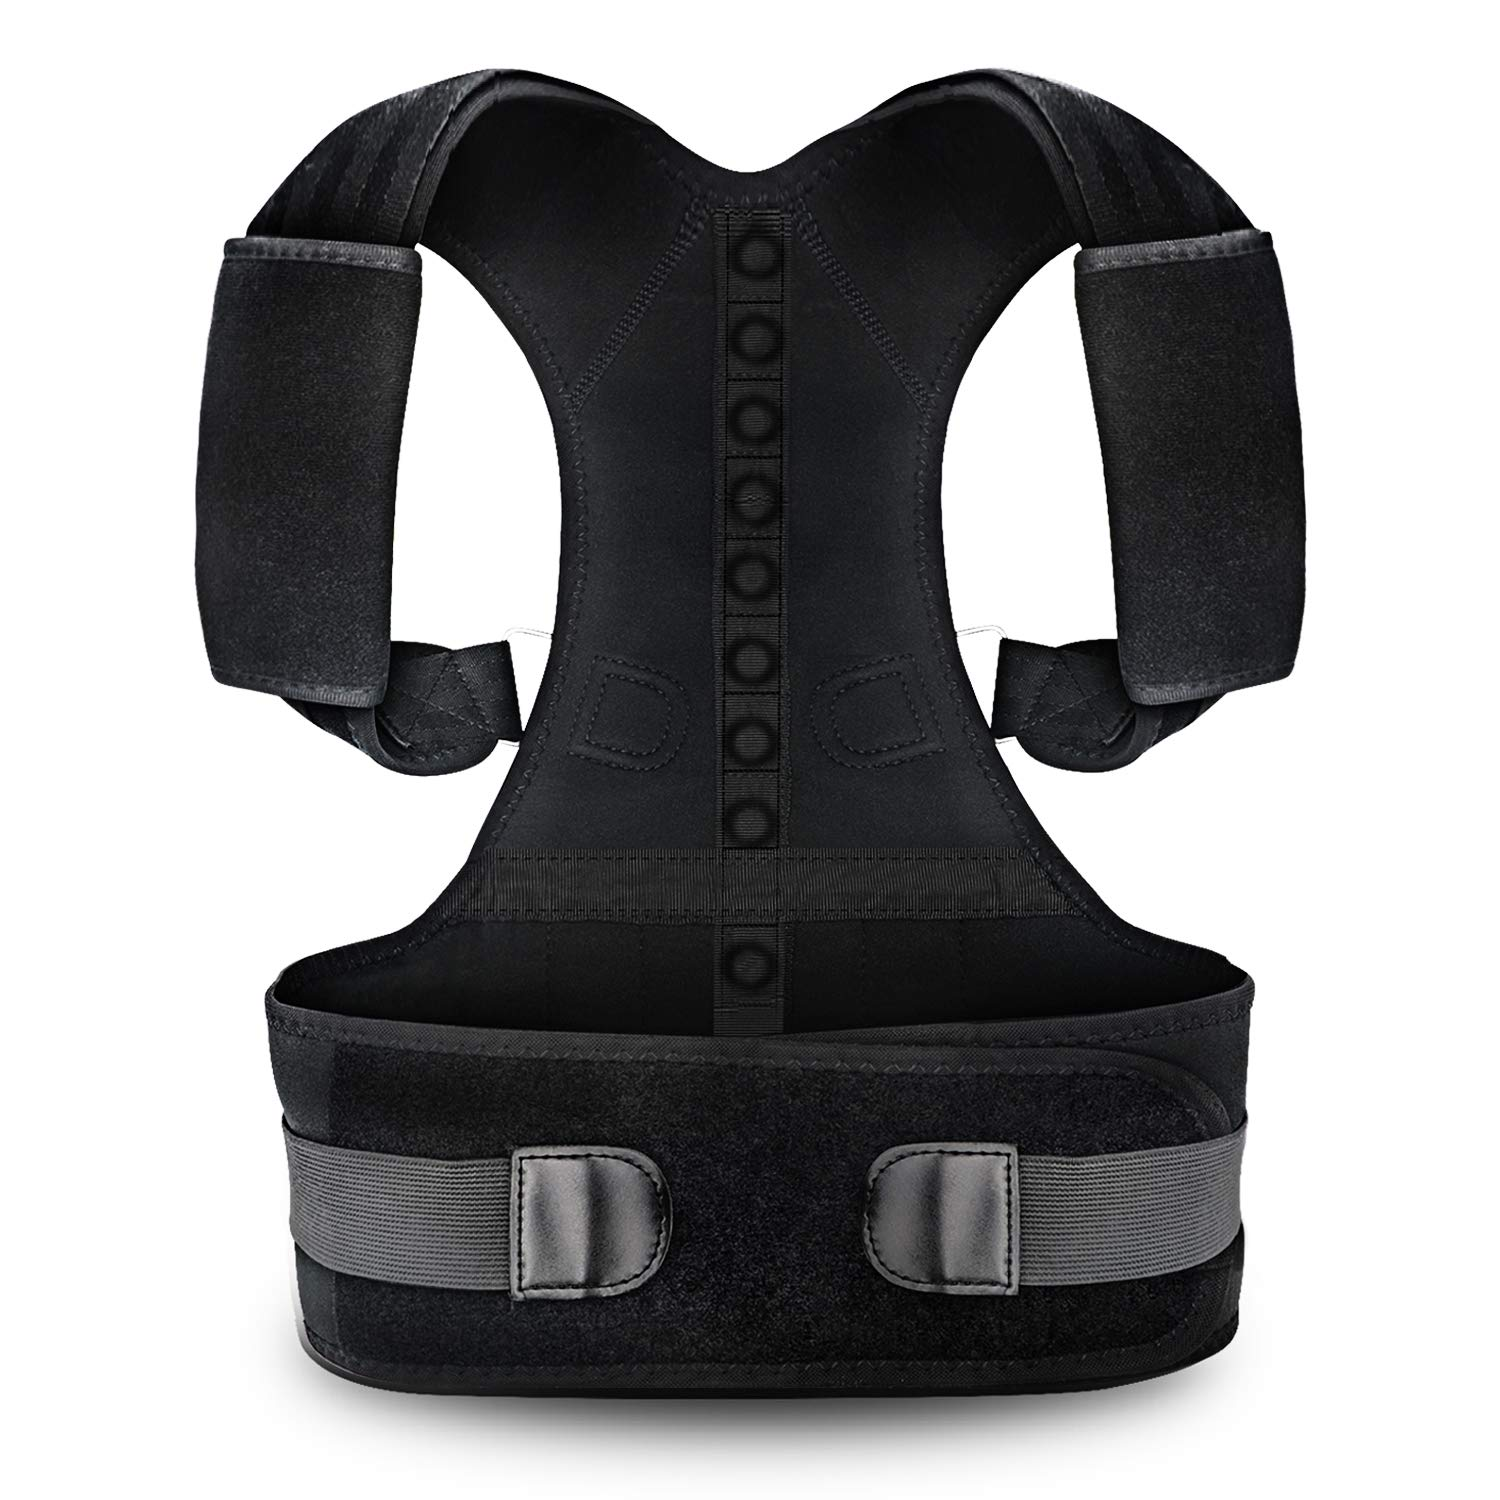 Posture Corrector for Men and Women KarmaRebirth Back Brace with Fully Adjustable Straps Shoulder Cushion Magnet Belt Improves Posture Provides Lumbar Support Relieve Lower and Upper Back Pain(M)